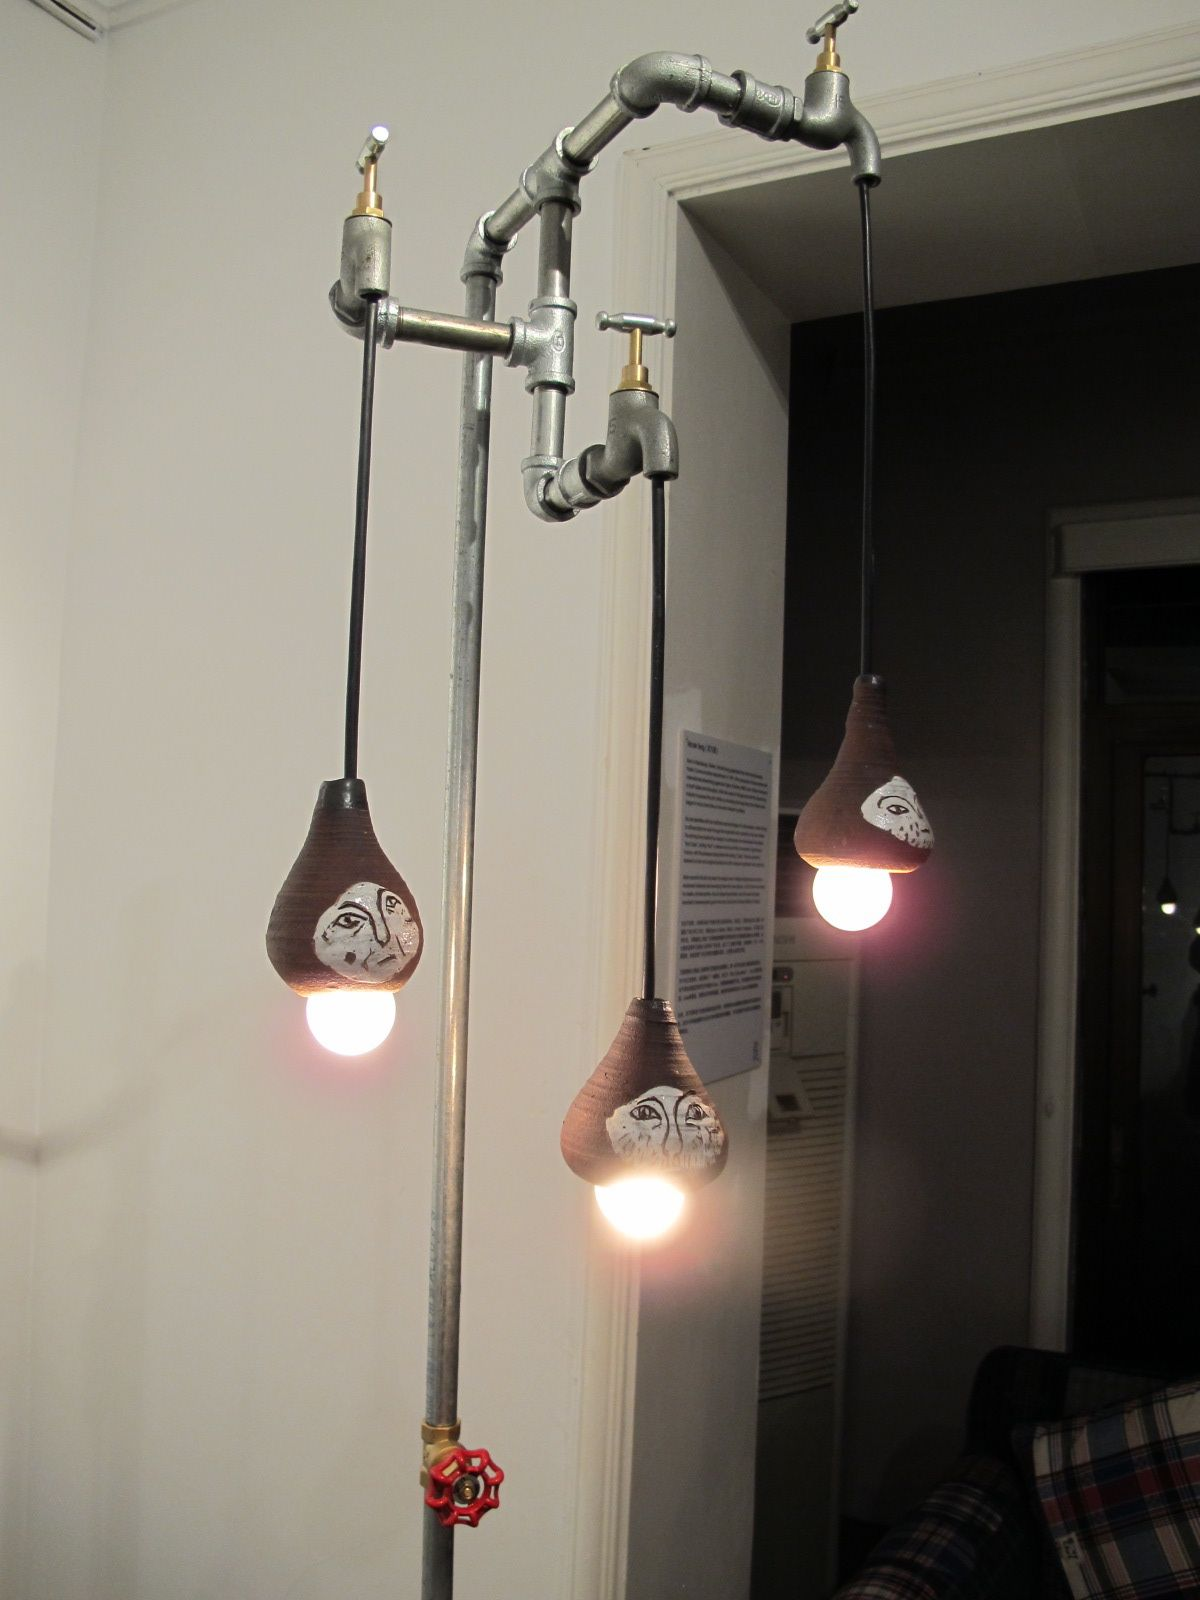 upcycled taps into lamps | Brutcake | Pinterest | Lighting ...